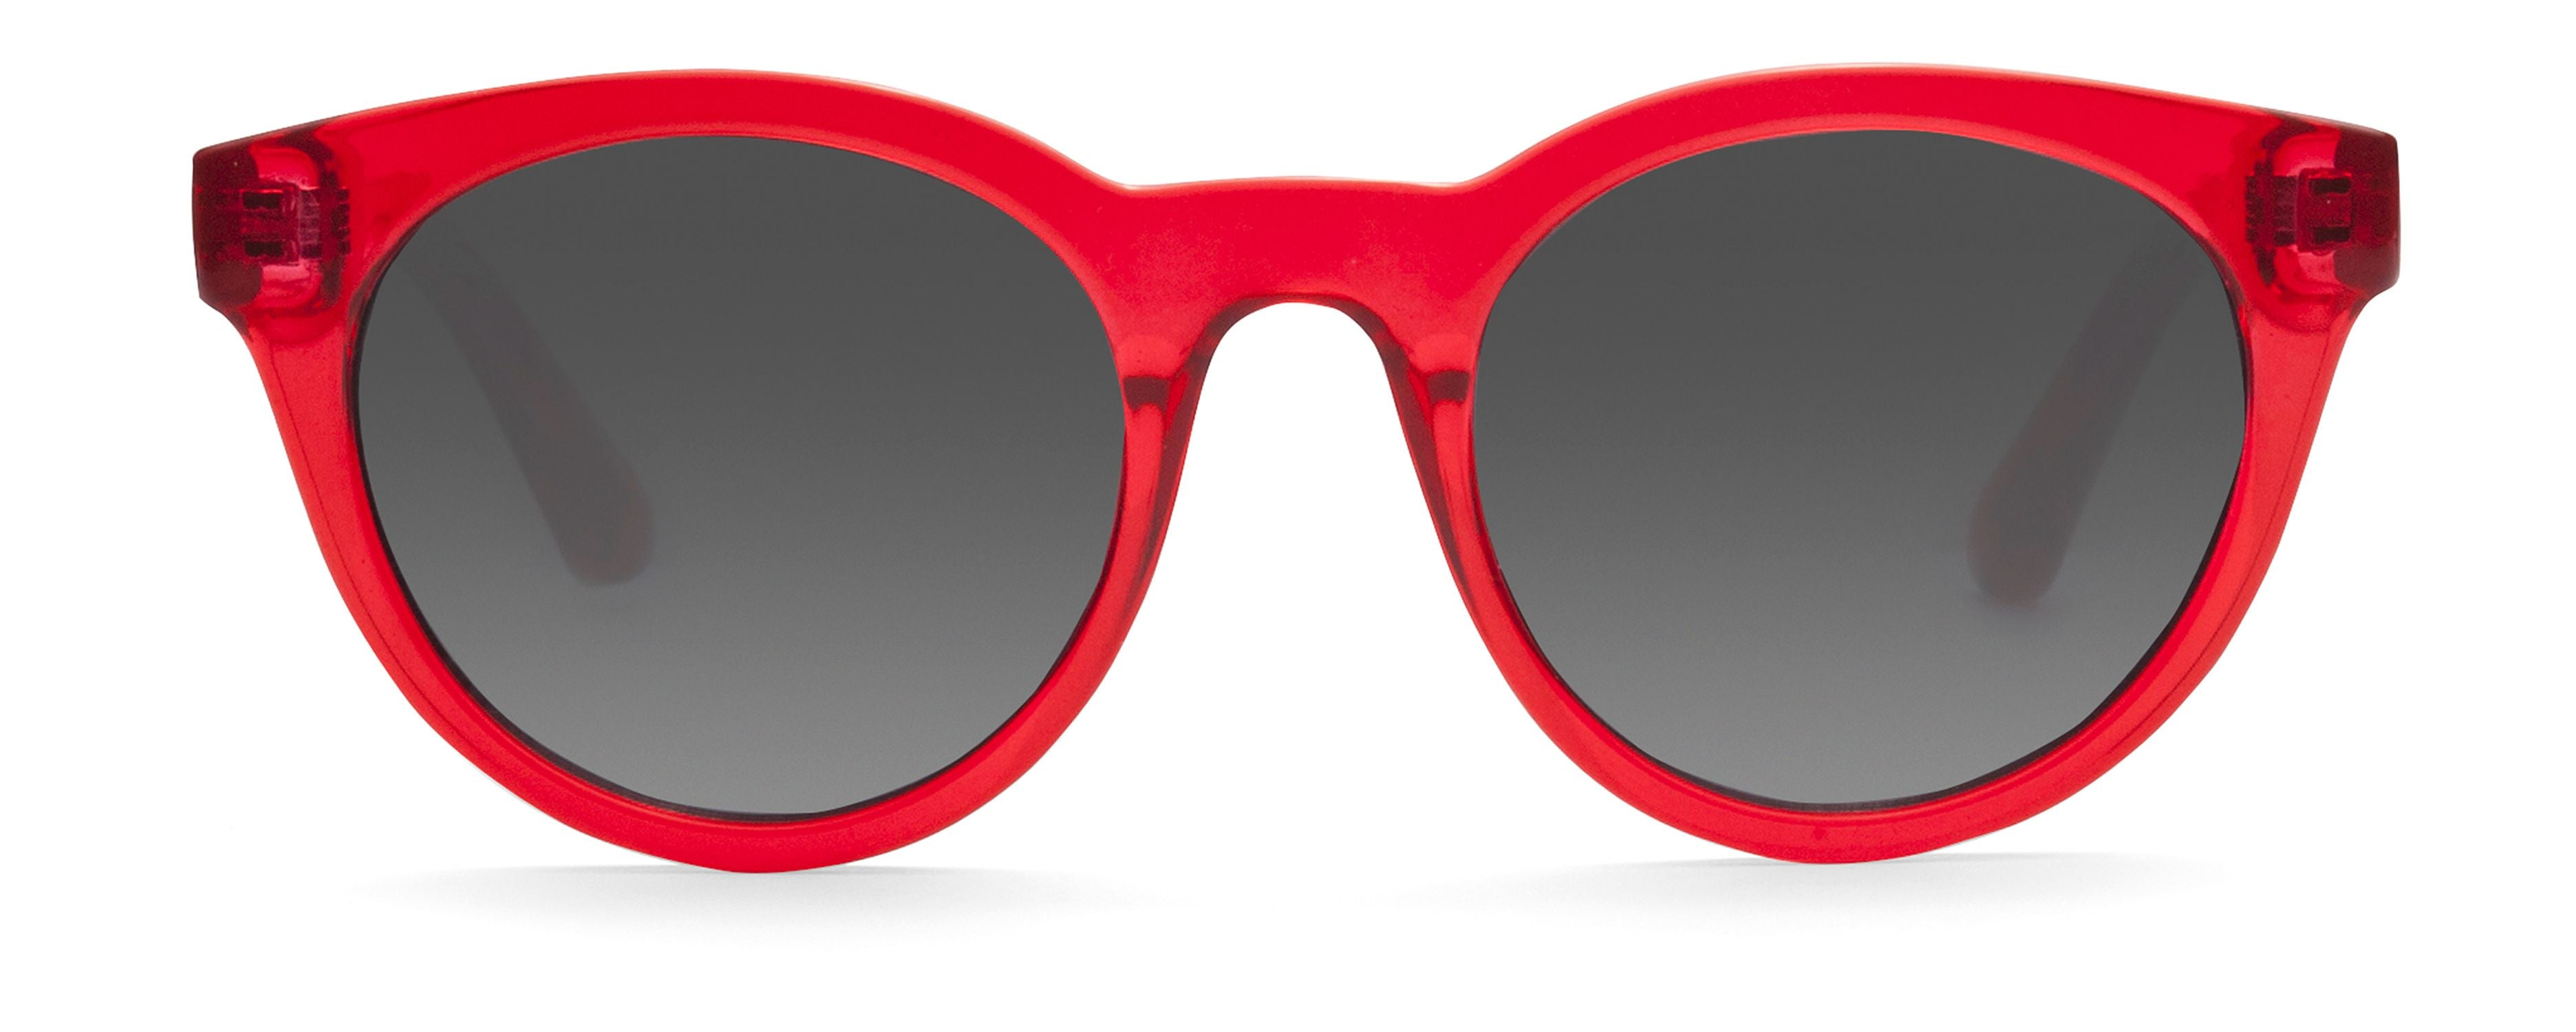 FIZZ Red JUNiA Kids Sunglasses